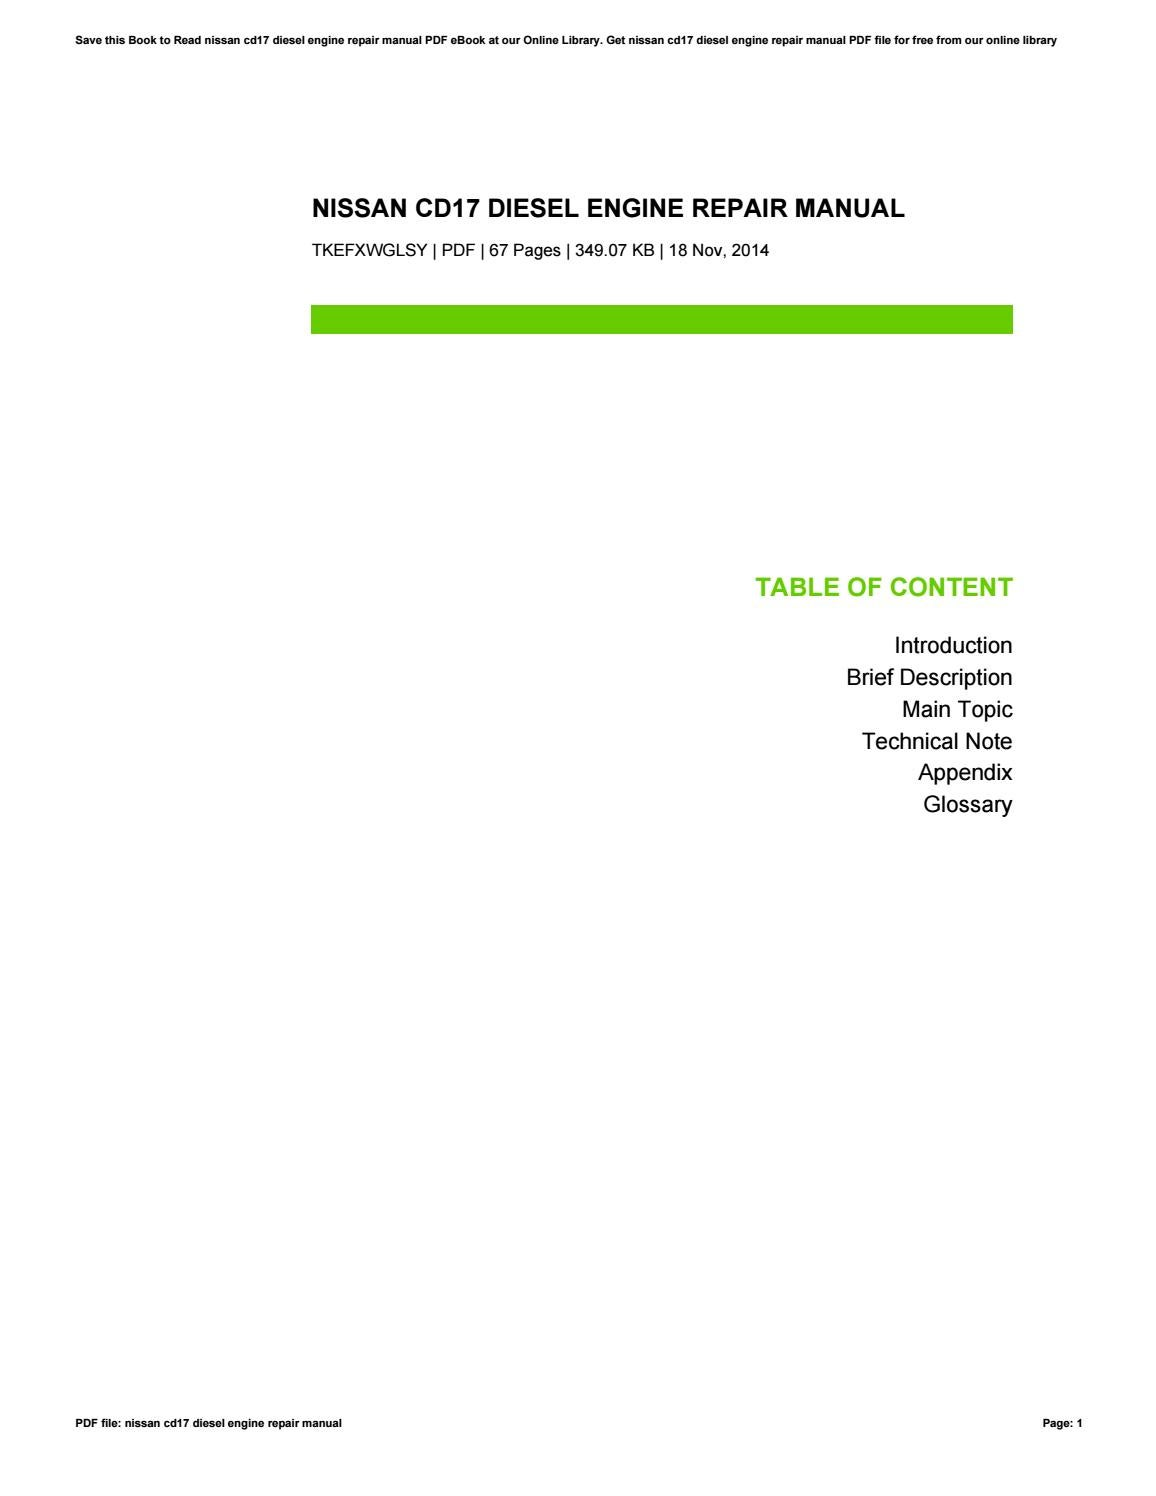 Nissan Diesel Manual Bolens G174 Wiring Diagram Array Cd17 Engine Repair By Paulfoutch3661 Issuu Rh